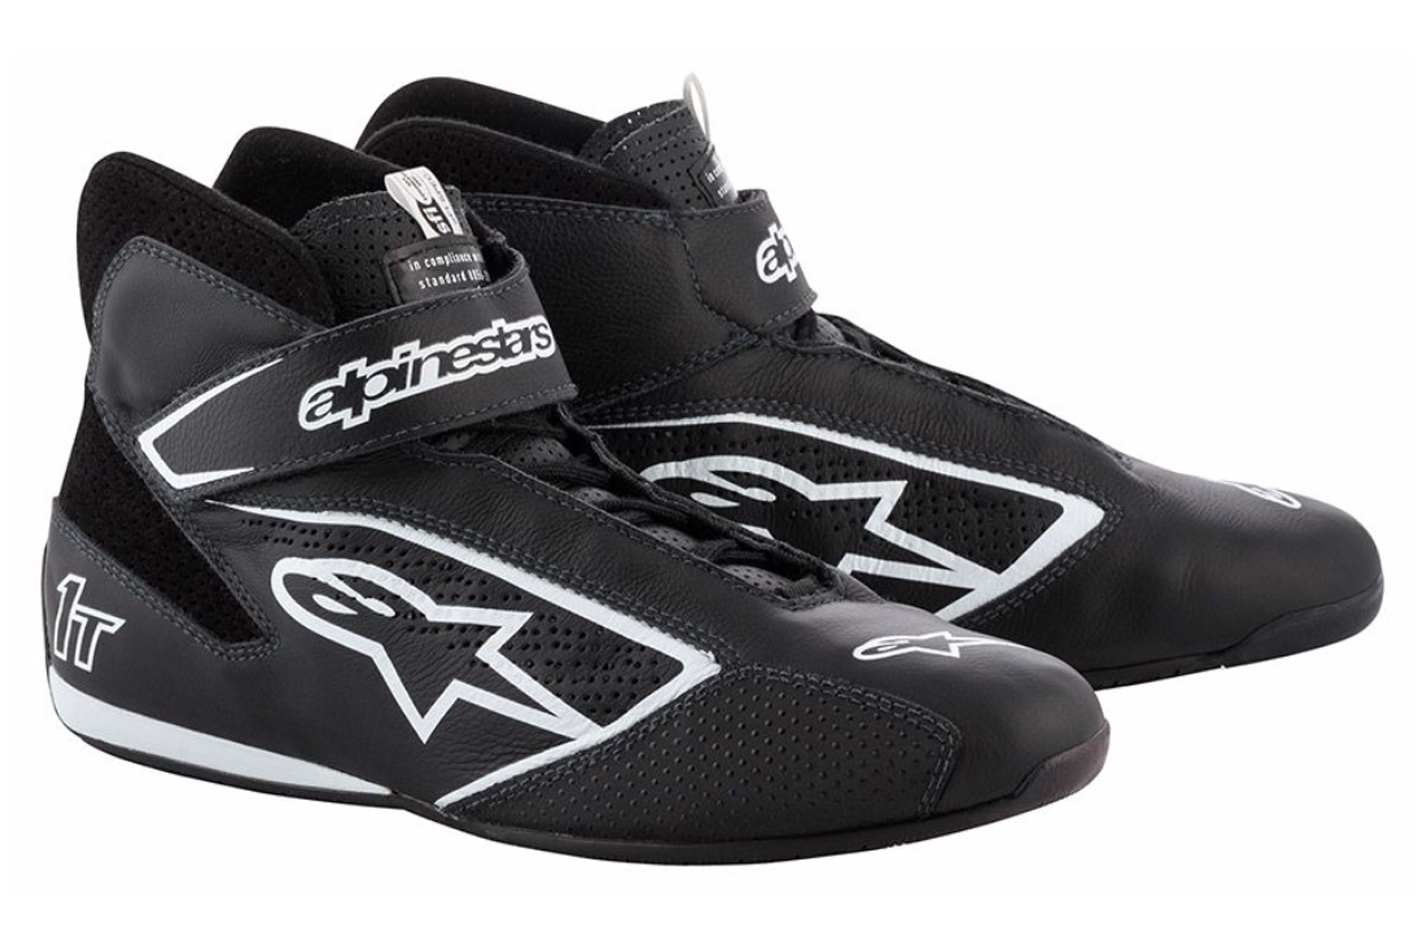 Alpinestars USA 2710119-12B-8.5 Shoe, Tech 1-T, Driving, Mid-Top, SFI 3.3, FIA Approved, Leather Outer, Nomex Inner, Black, Size 8.5, Pair